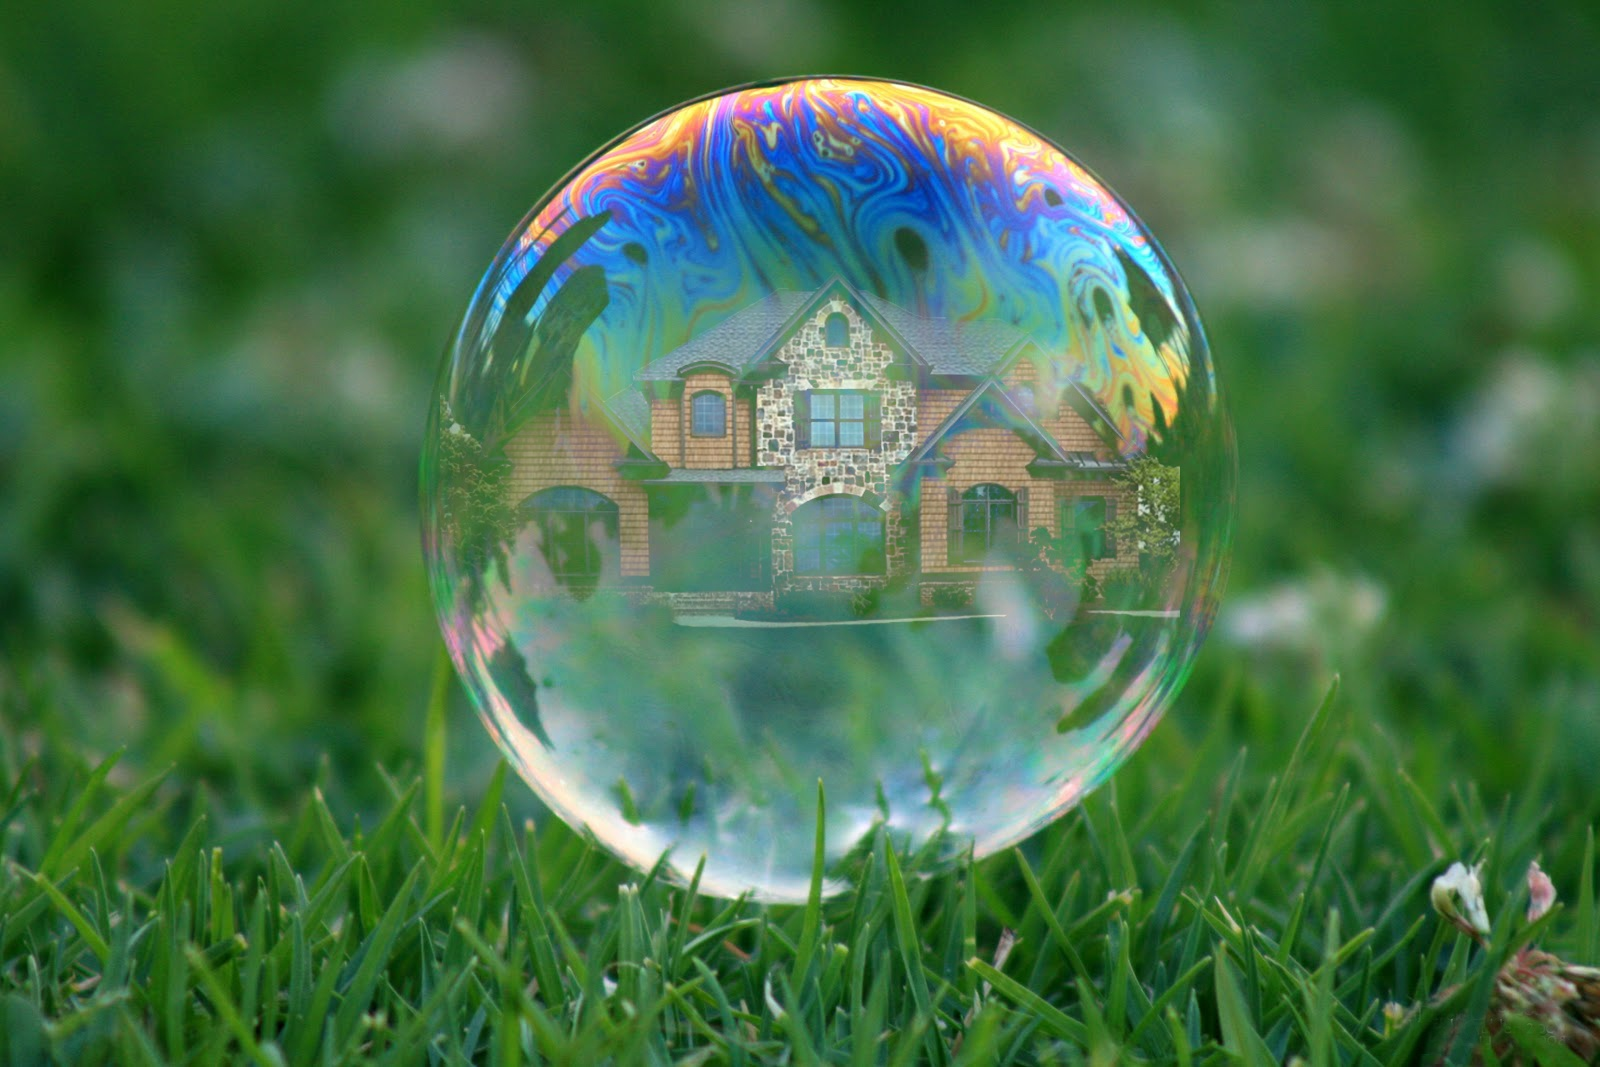 The U.S. housing market has recovered from the bubble bursting 10 years ago, but there have been fears ever since that we're living in another bubble.